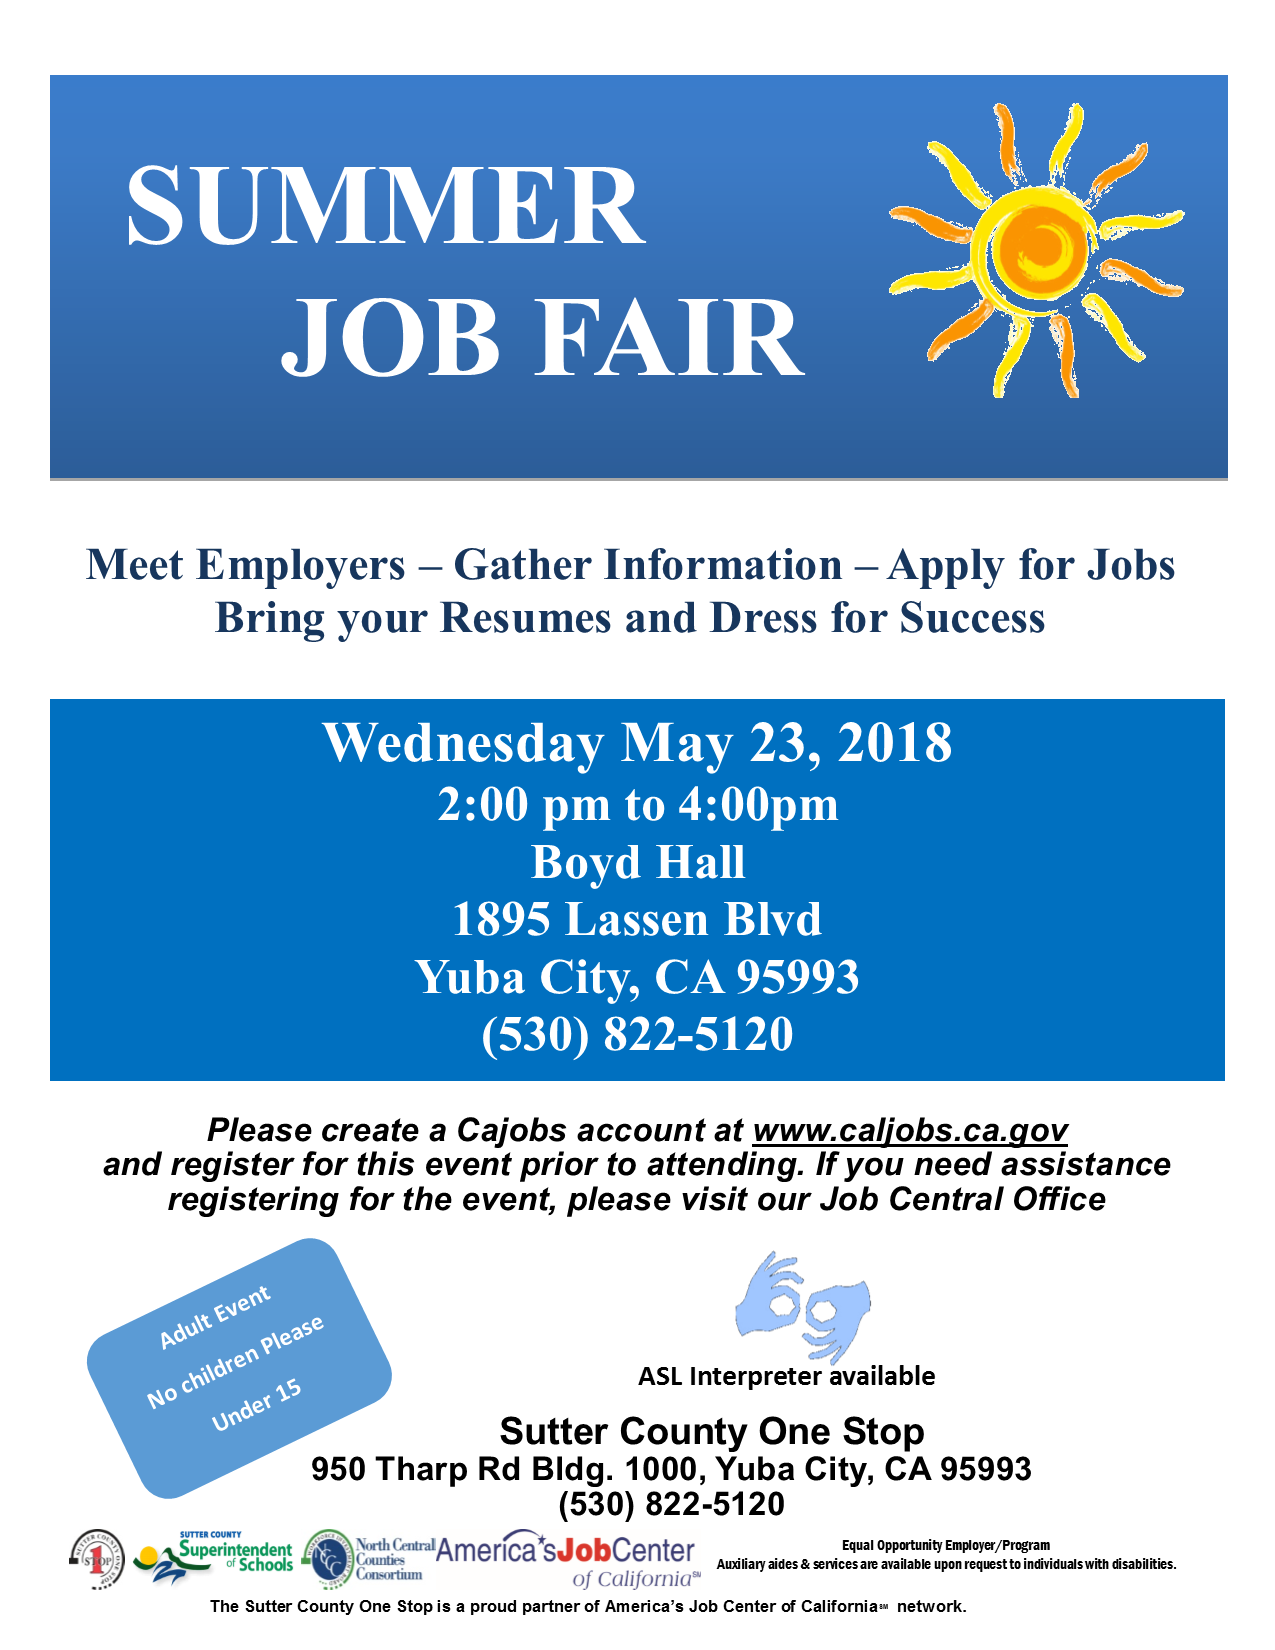 Summer Job Fair 5/23/2018 2:00pm-4:00pm